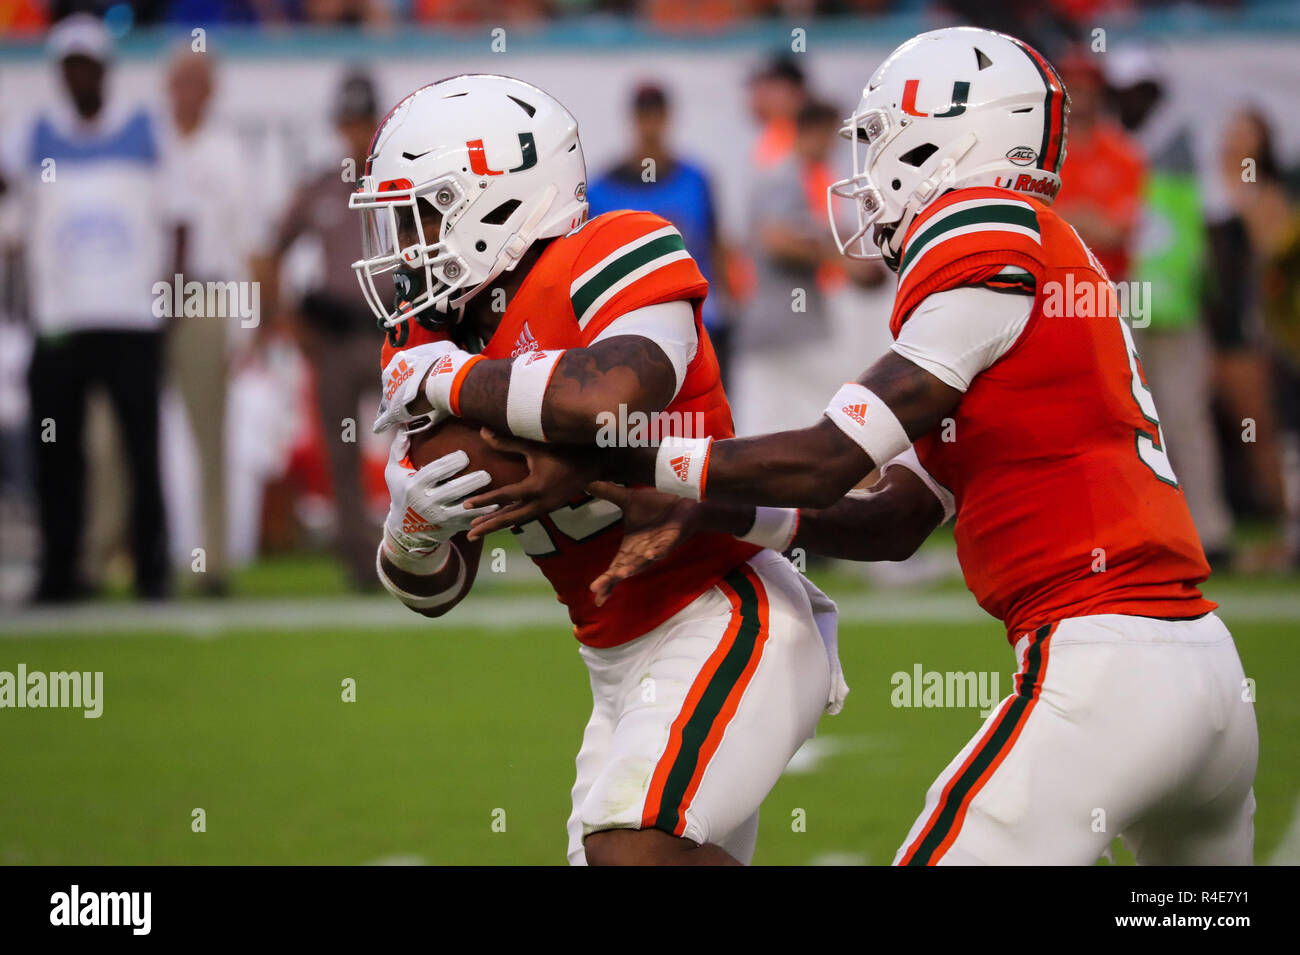 Miami Gardens, Florida, USA. 24th Nov, 2018. Miami Hurricanes running back Cam'Ron Davis (23) runs with the ball after a handoff from Miami Hurricanes quarterback N'Kosi Perry (5) during the college football game between the Pittsburgh Panthers and the Miami Hurricanes at the Hard Rock Stadium in Miami Gardens, Florida. The Hurricanes won 24-3. Mario Houben/CSM/Alamy Live News - Stock Image